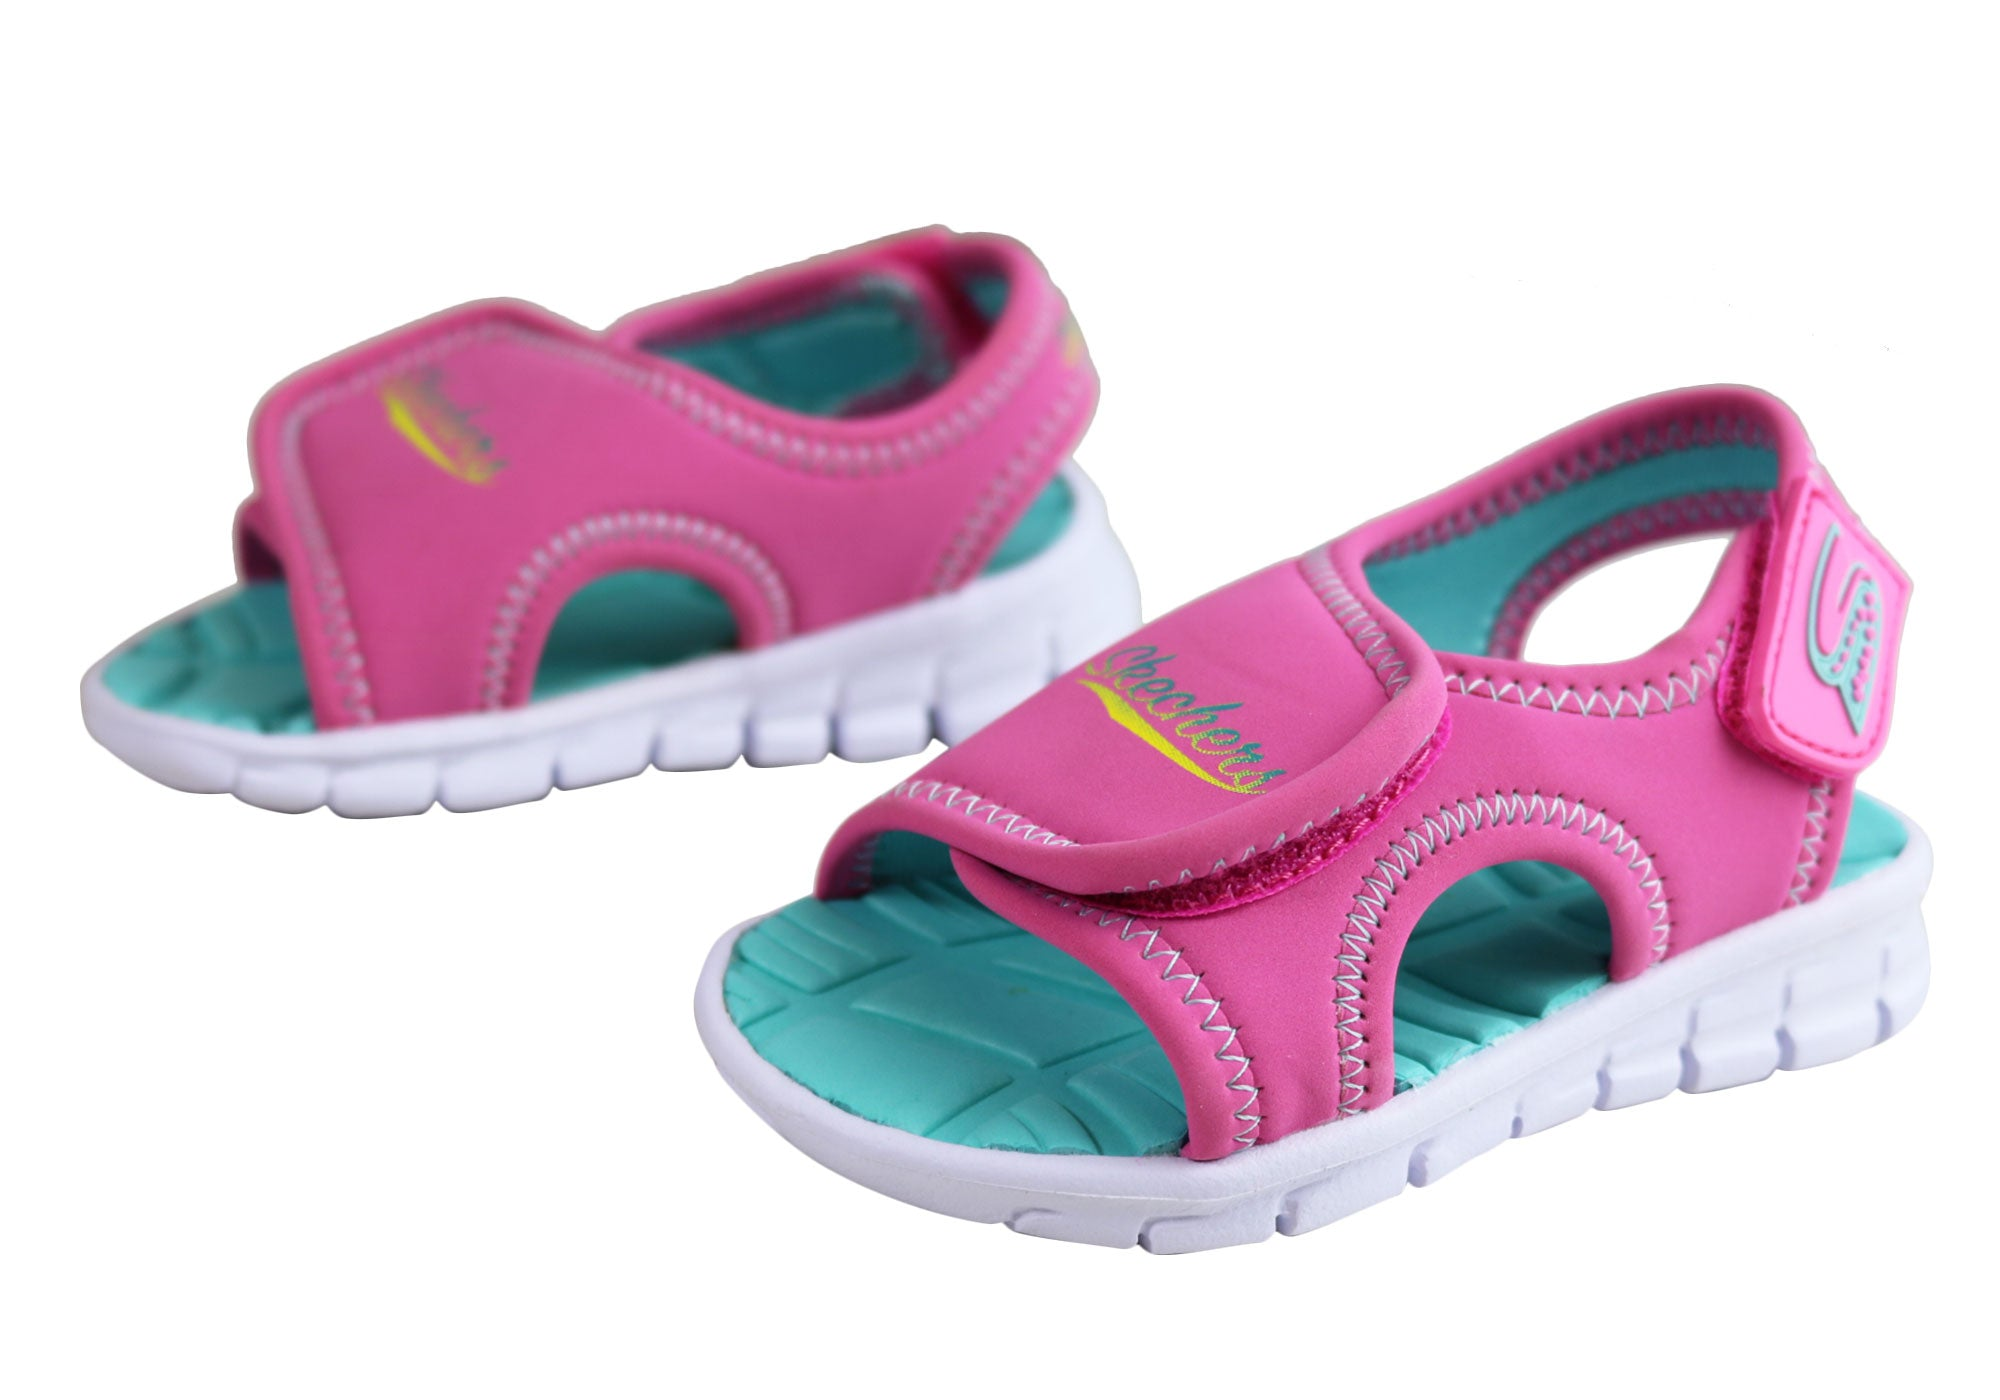 Skechers Infant Toddler Kids Cushioned Synergize